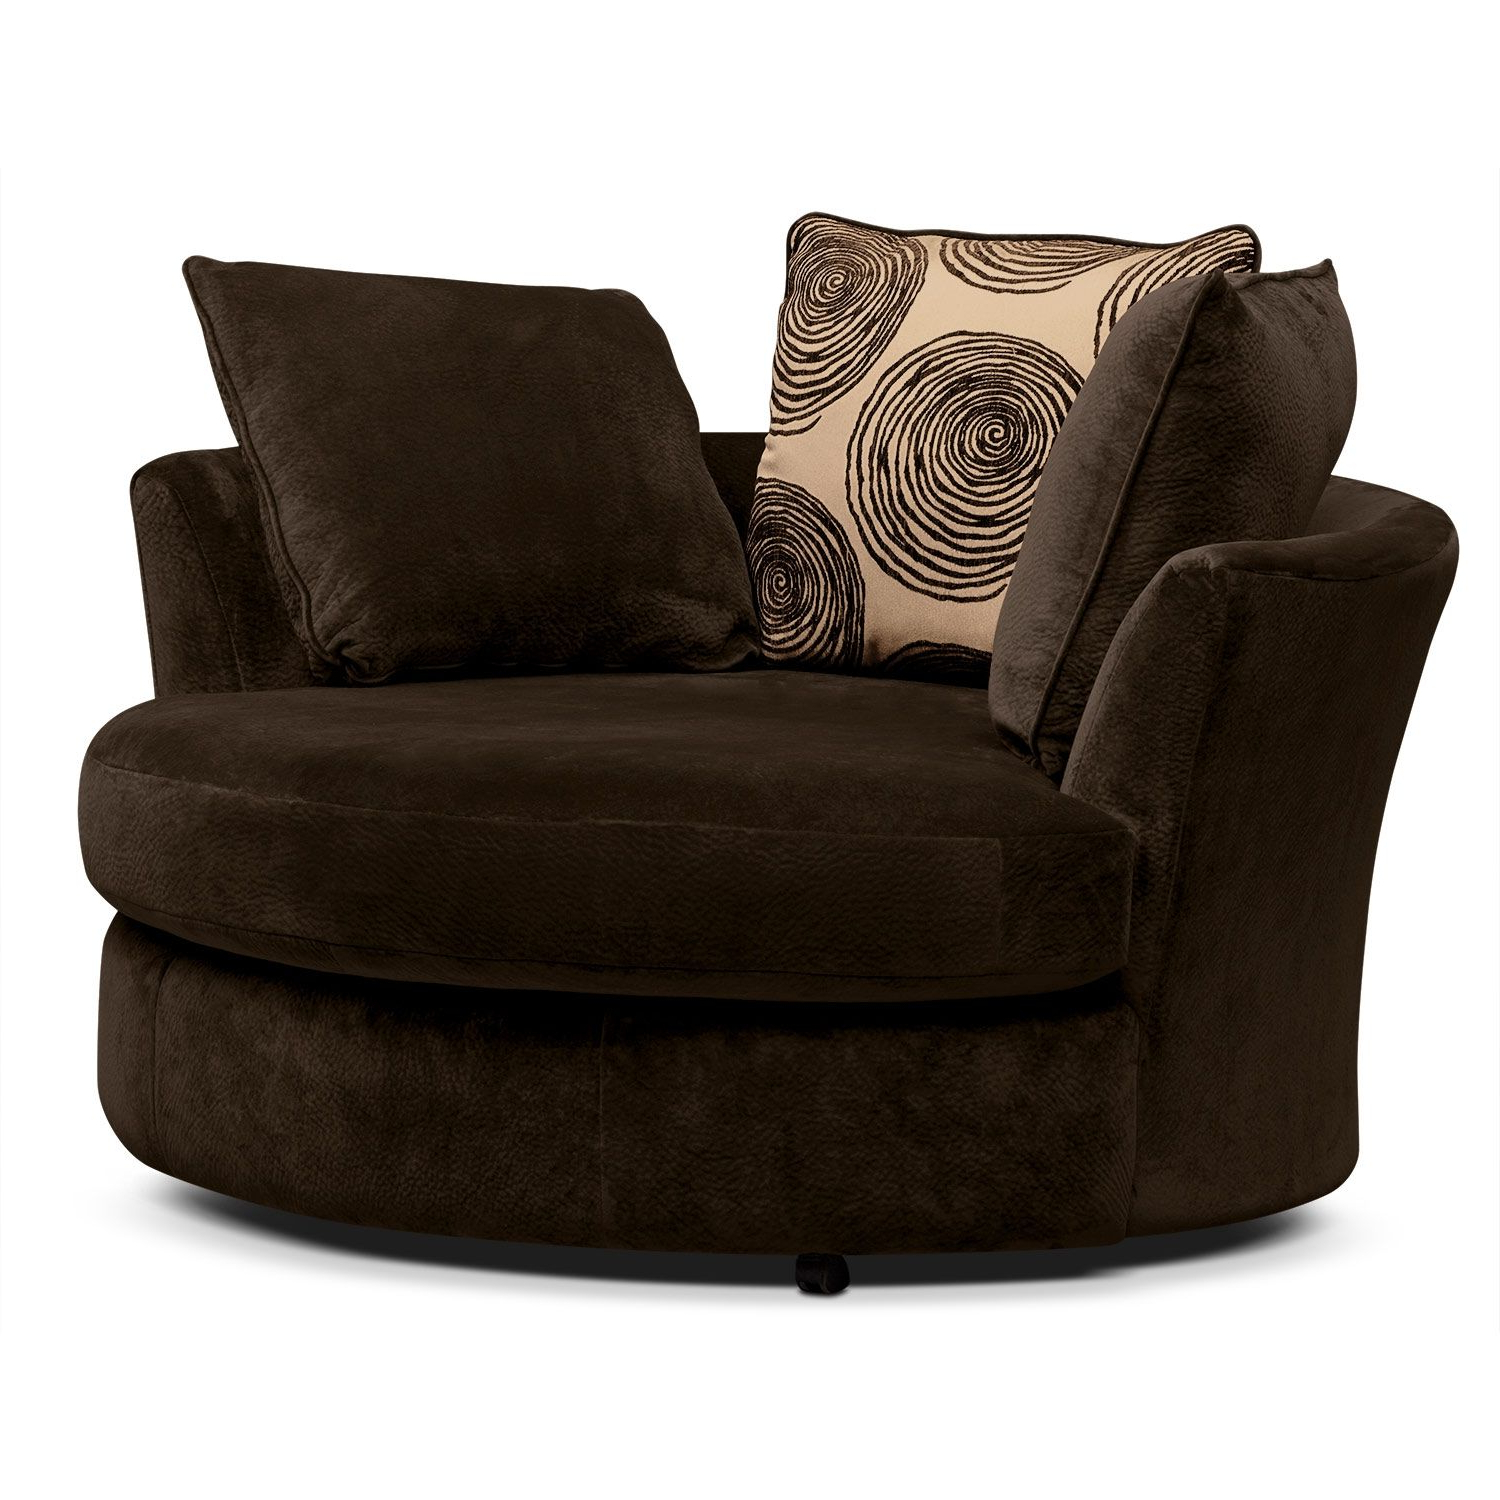 Home Decor Within Round Sofa Chairs (View 8 of 20)